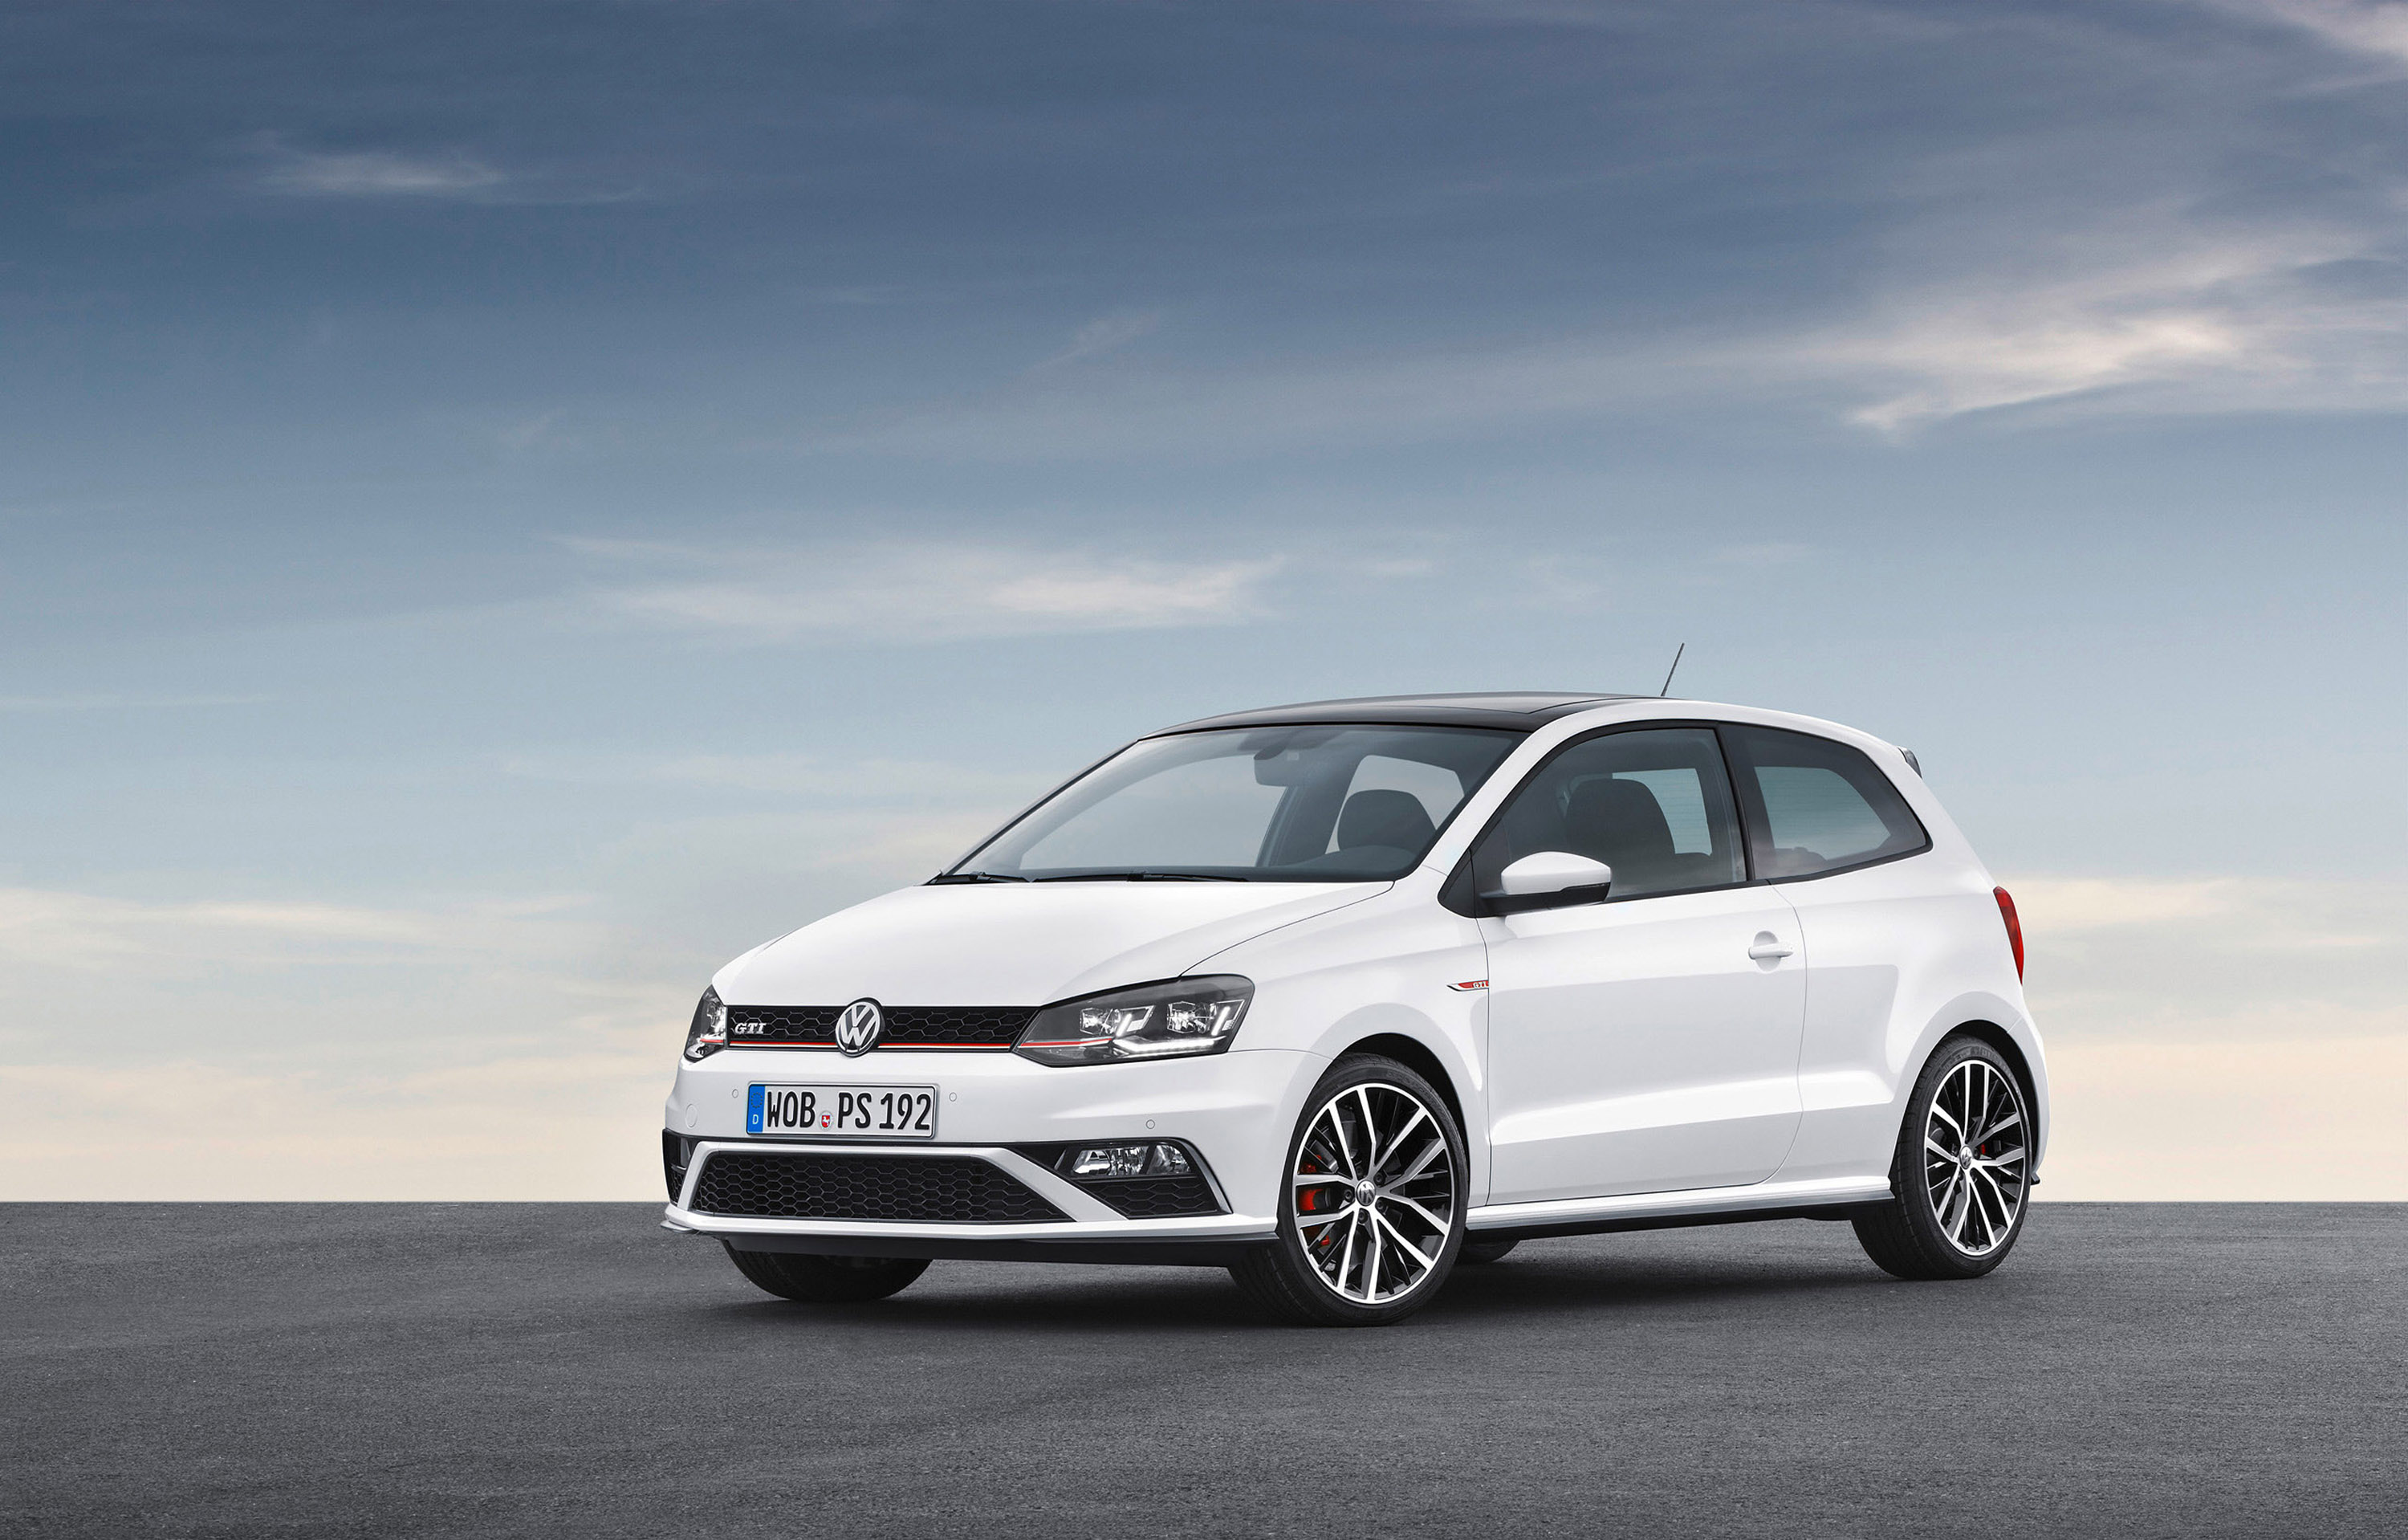 2015 Volkswagen Polo Gti Facelift Is Almost As Good As The